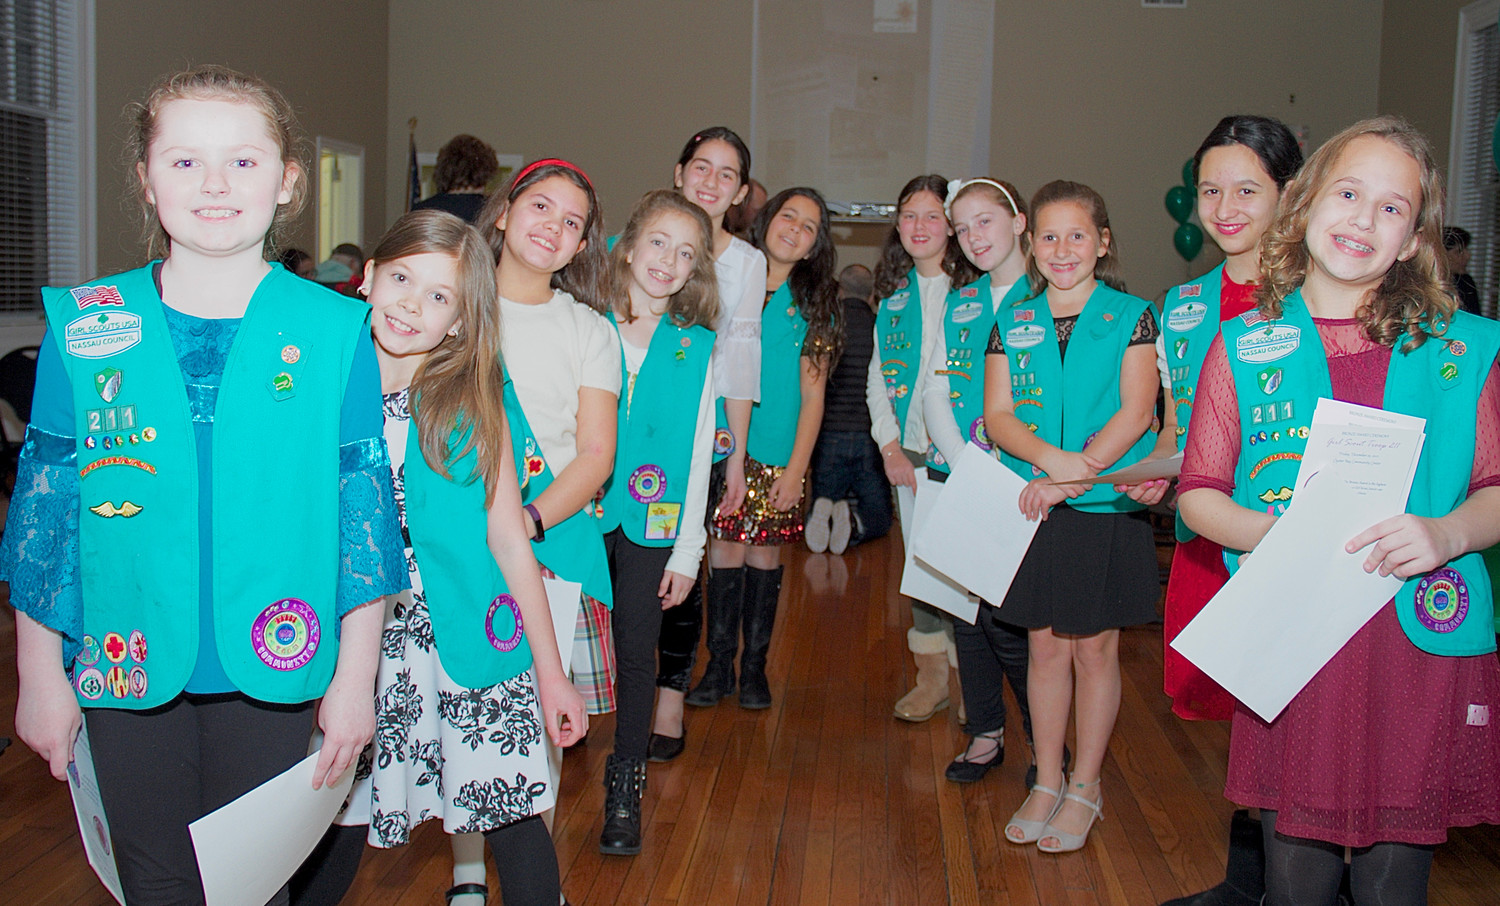 Troop 211 waited for guests to arrive at the entrance of the Oyster Bay Community Center, where their Bronze Award ceremony was held on Dec. 22.